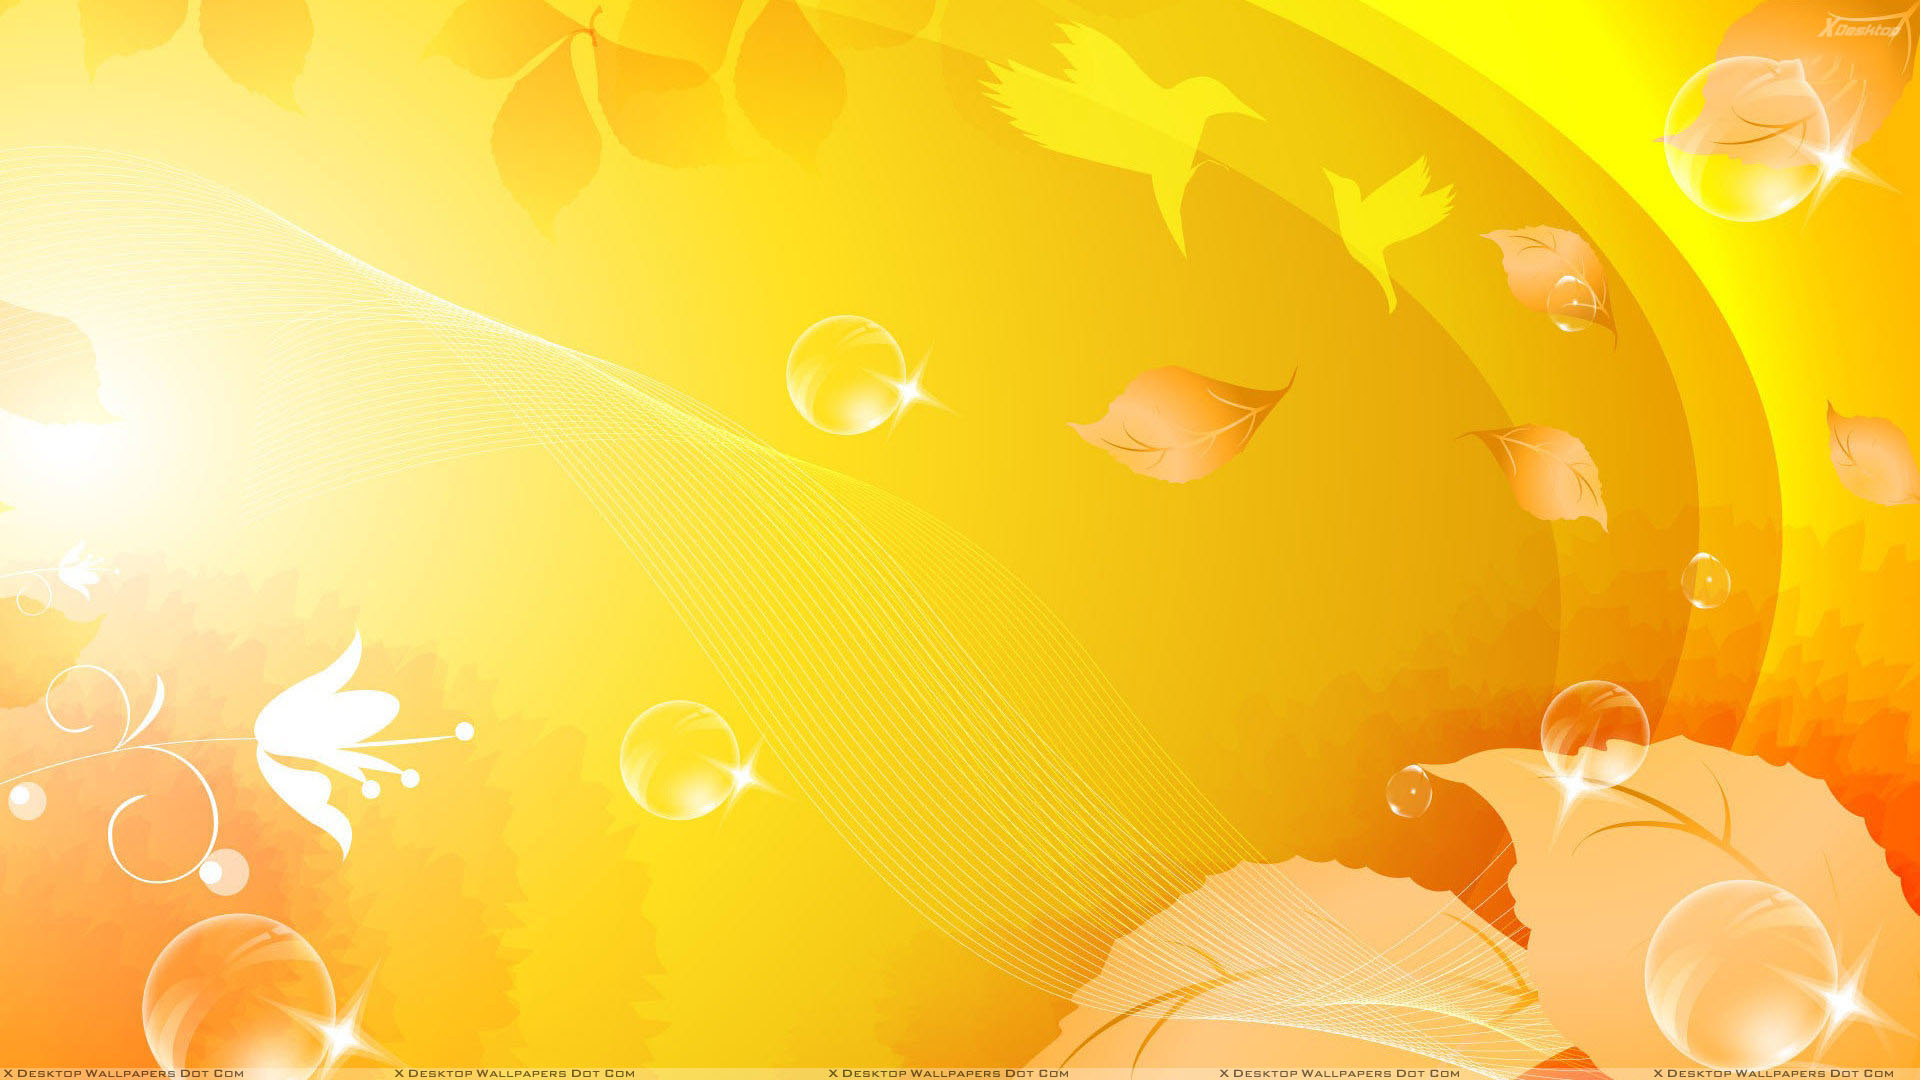 desktop wallpapers a flowers backgrounds a big yellow flower a www 1920x1080